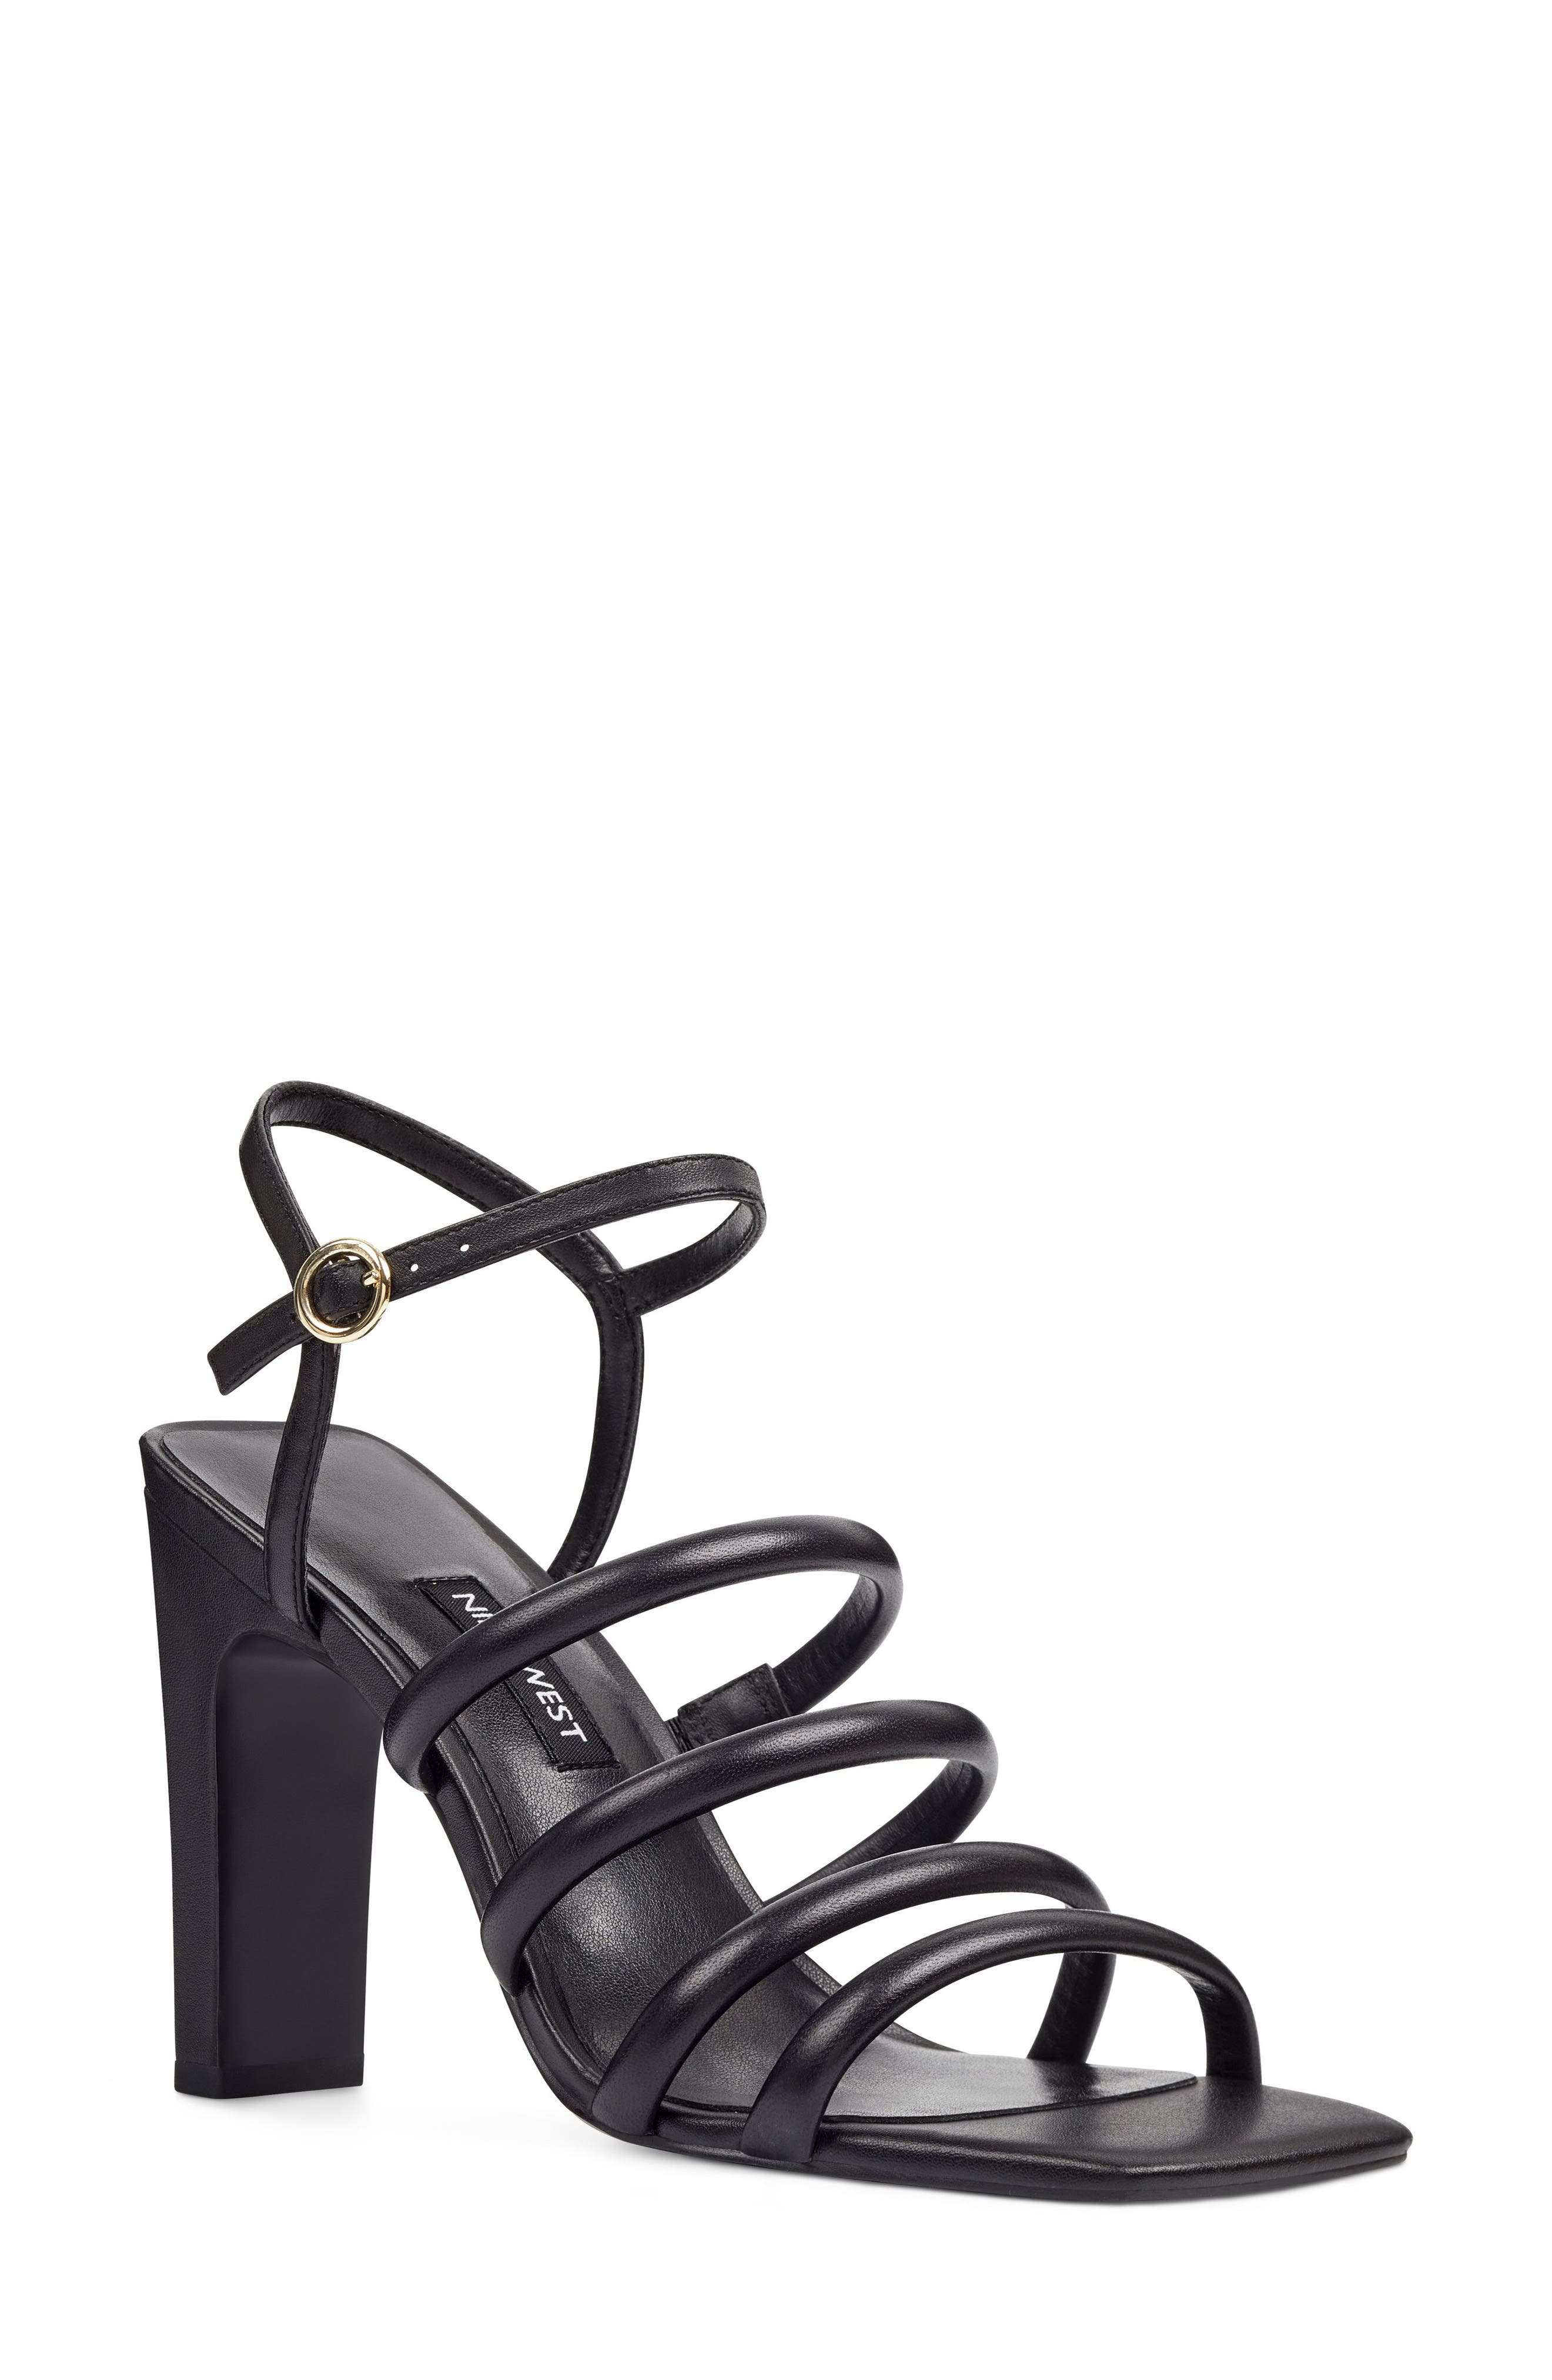 Laxian Cage Sandal,                         Main,                         color, Black Leather